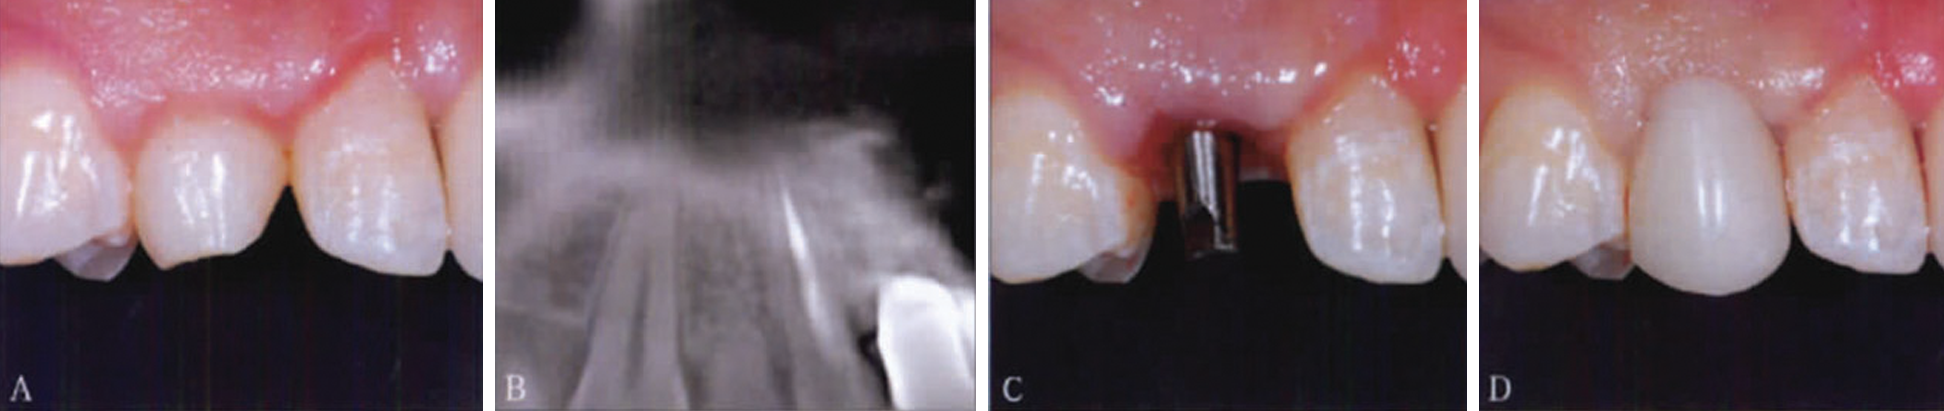 Immediate restoration implant with mini-implant of case 1.